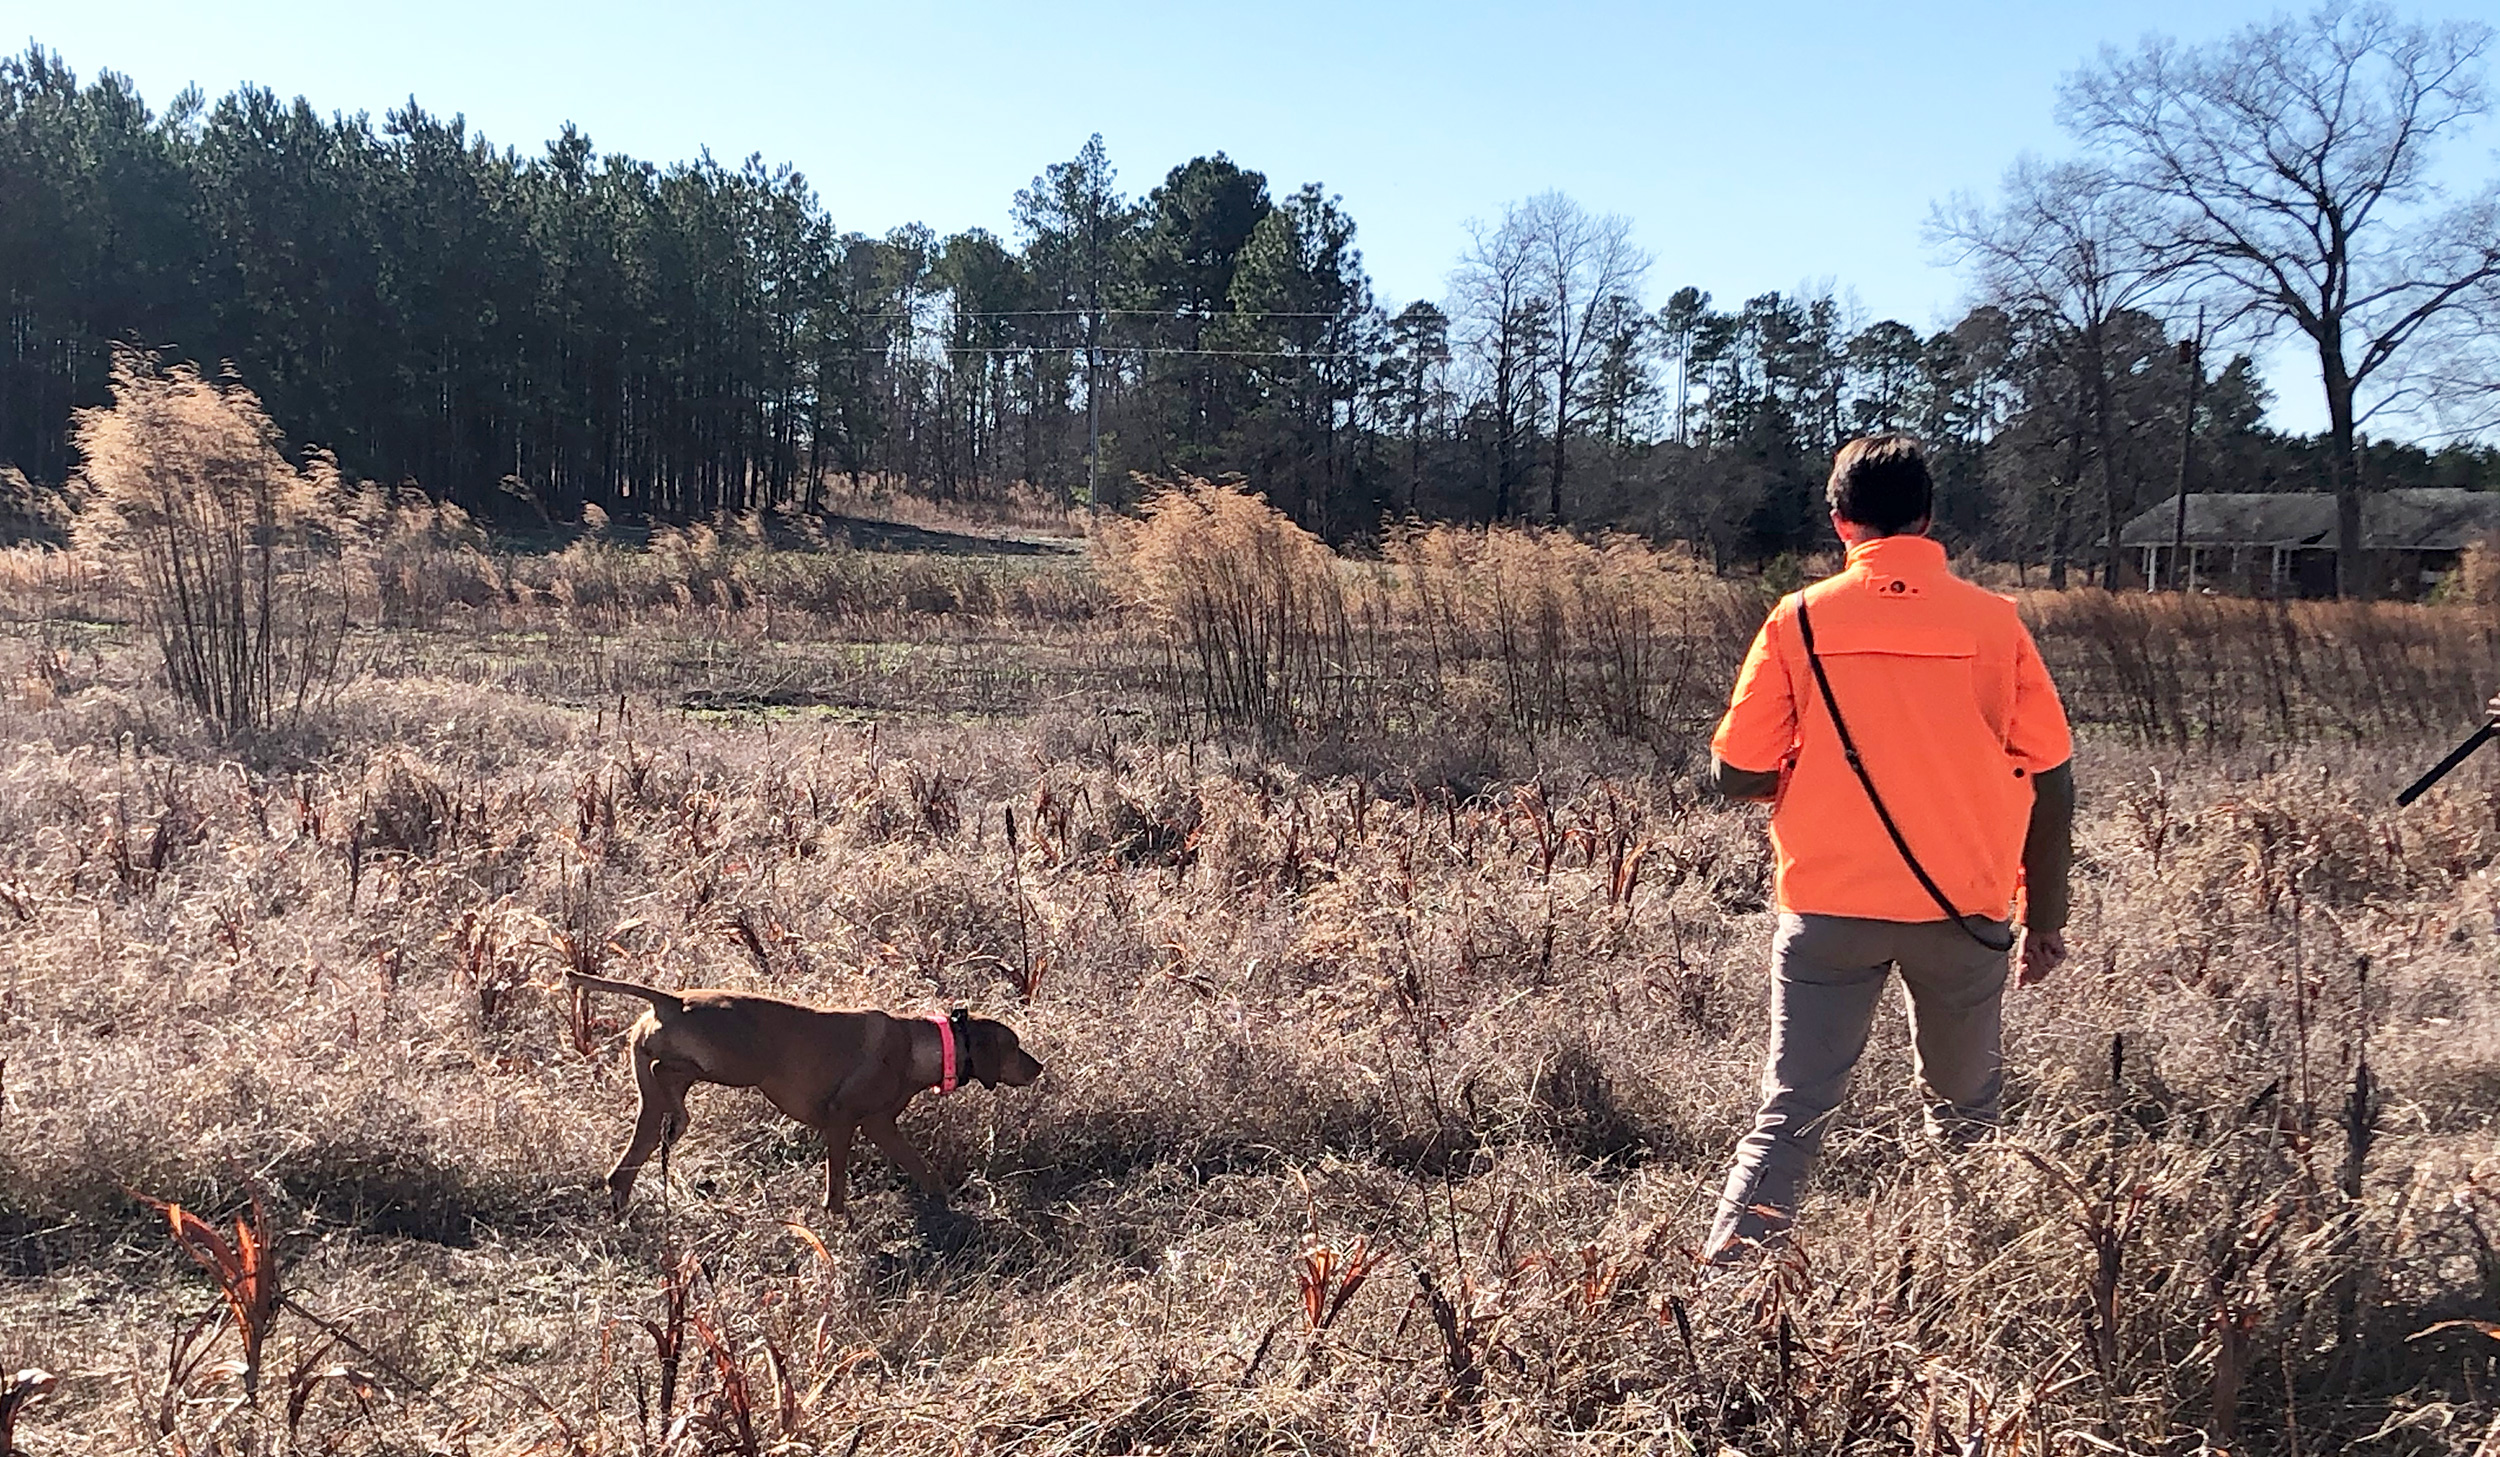 Who is the Accidental Bird Dog?